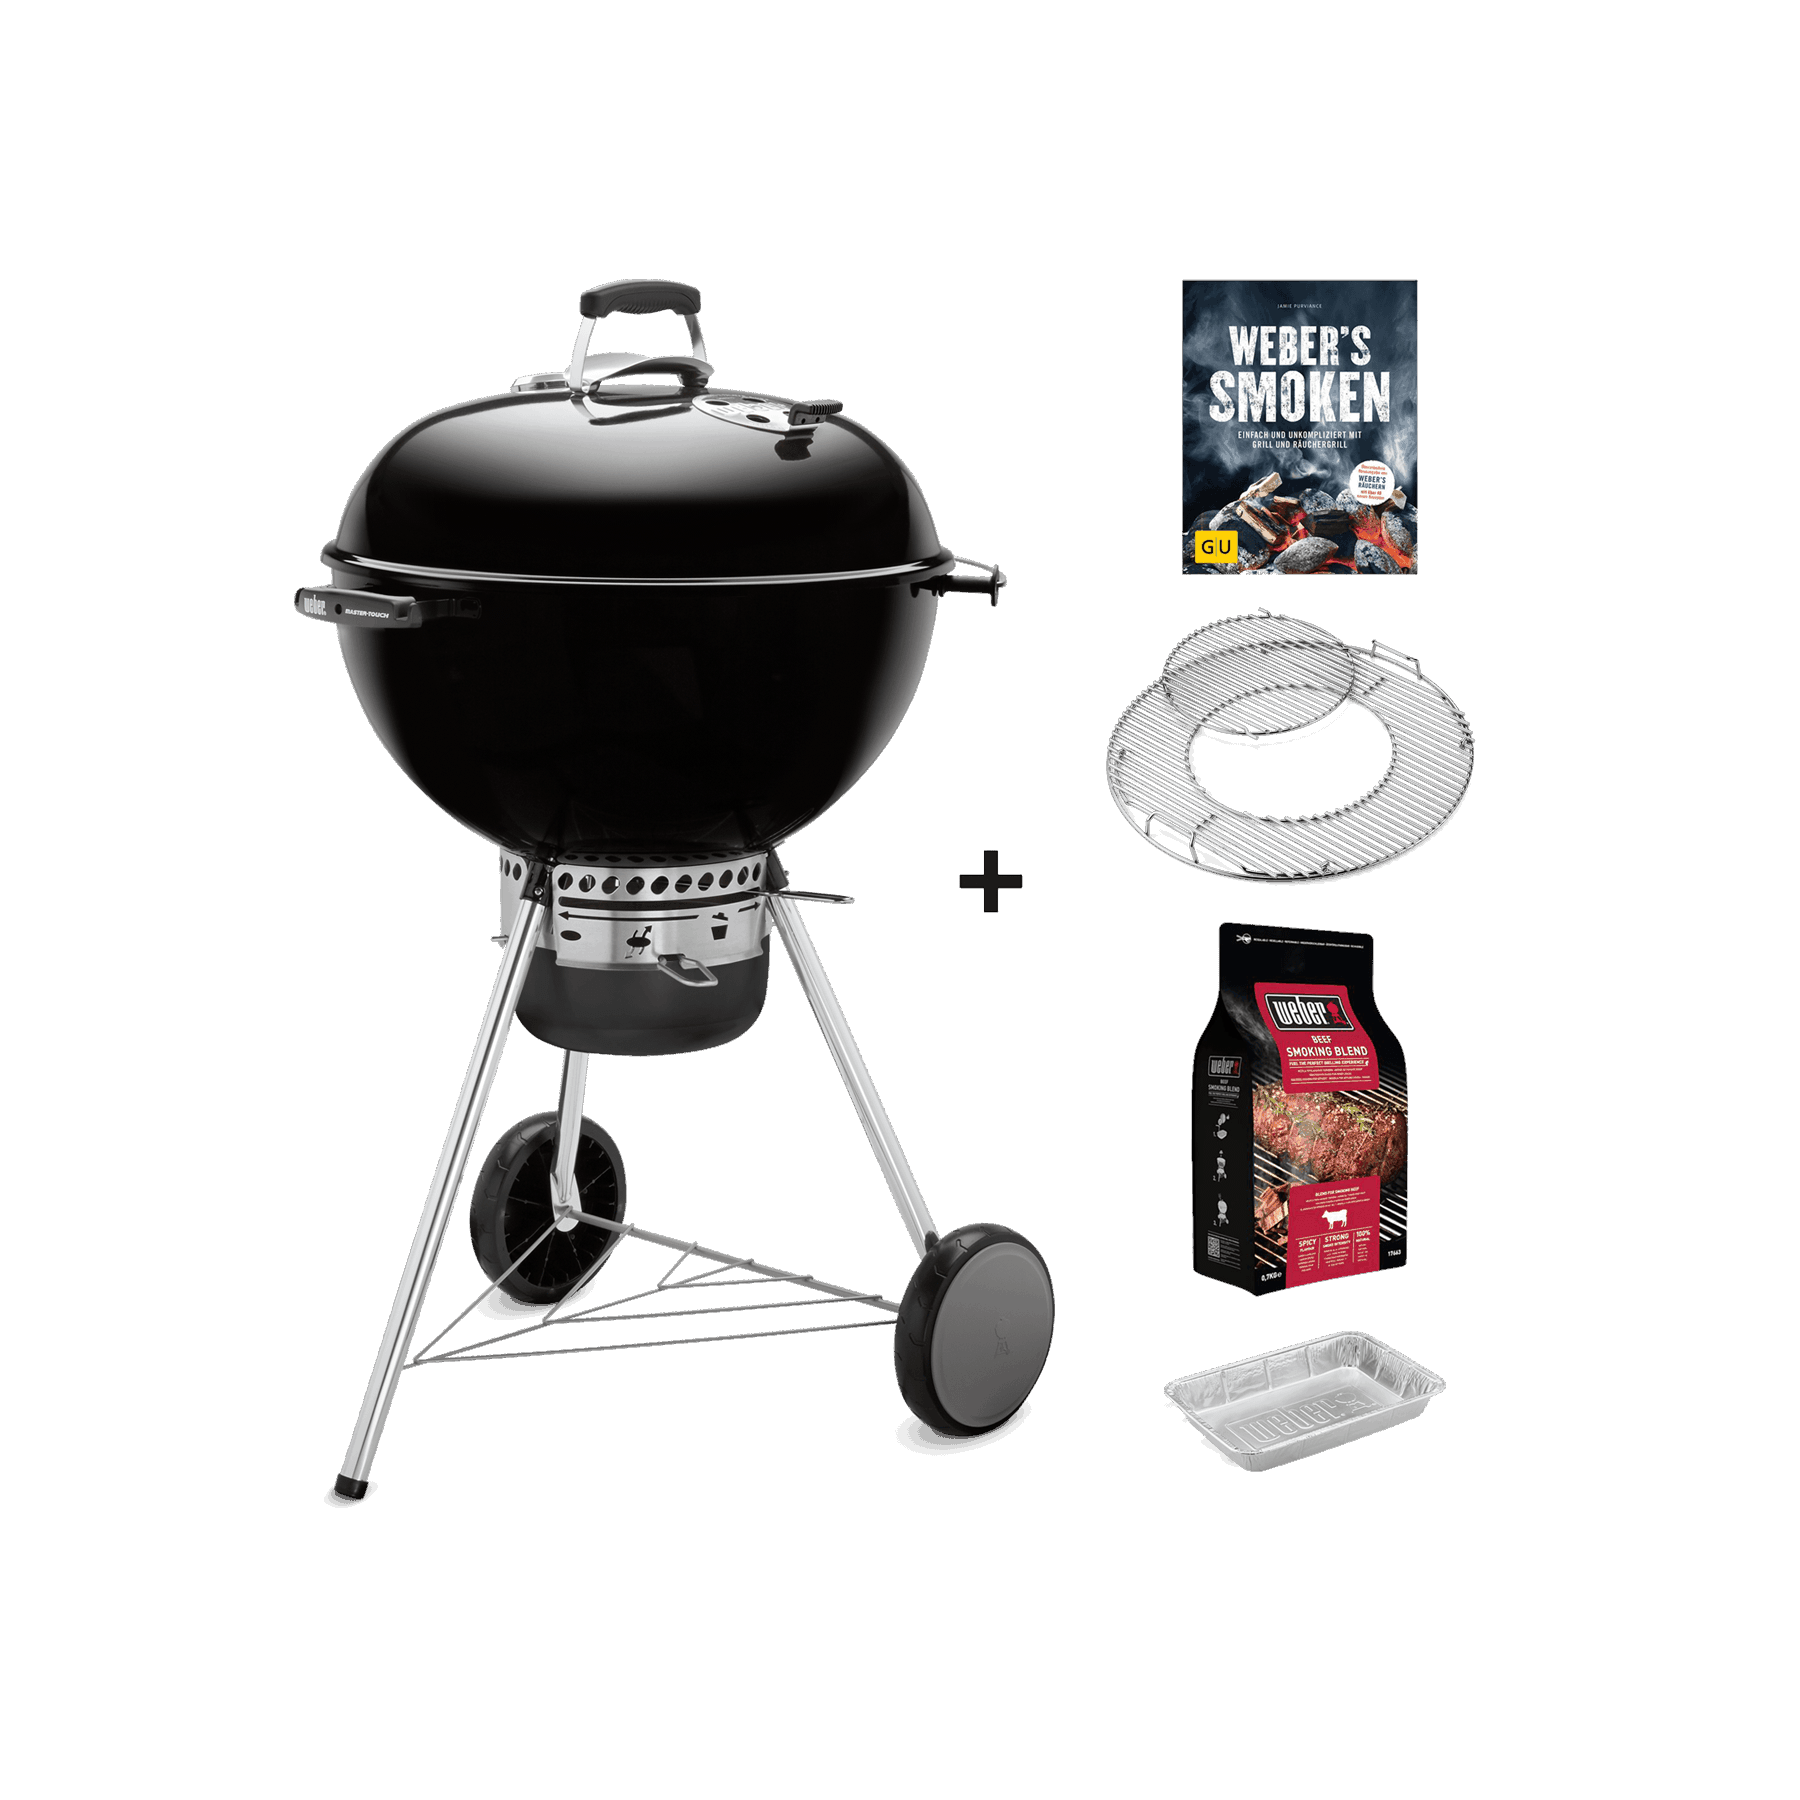 Master-Touch GBS Special Edition Pro – Holzkohlegrill + Räucher-Starter-Set